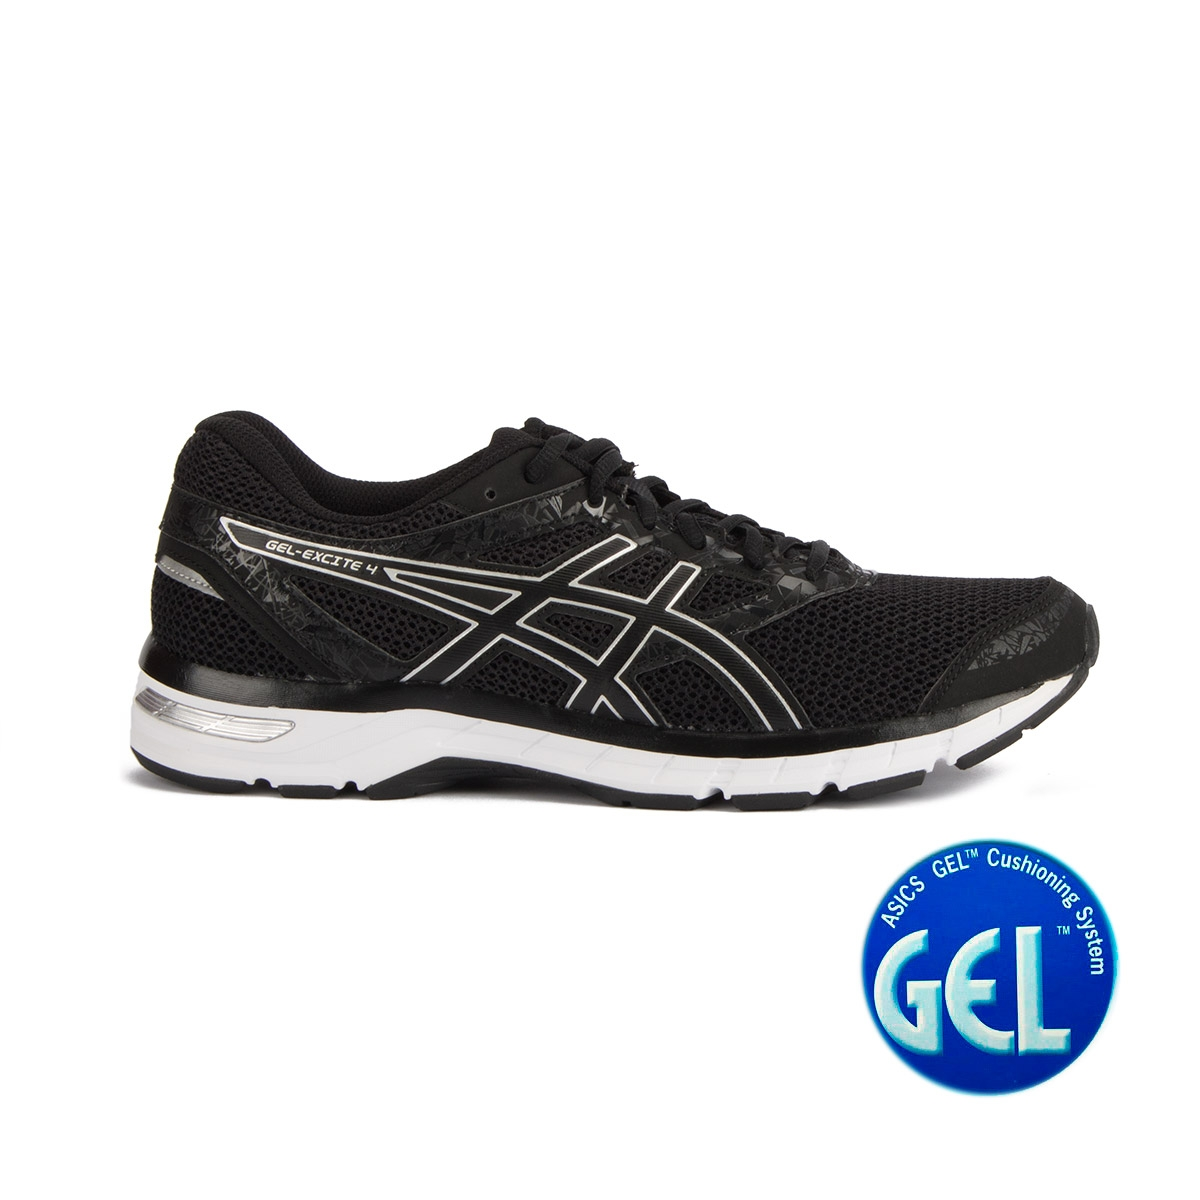 Asics Gel Excite 4 Black Onix Silver Negro Hombre